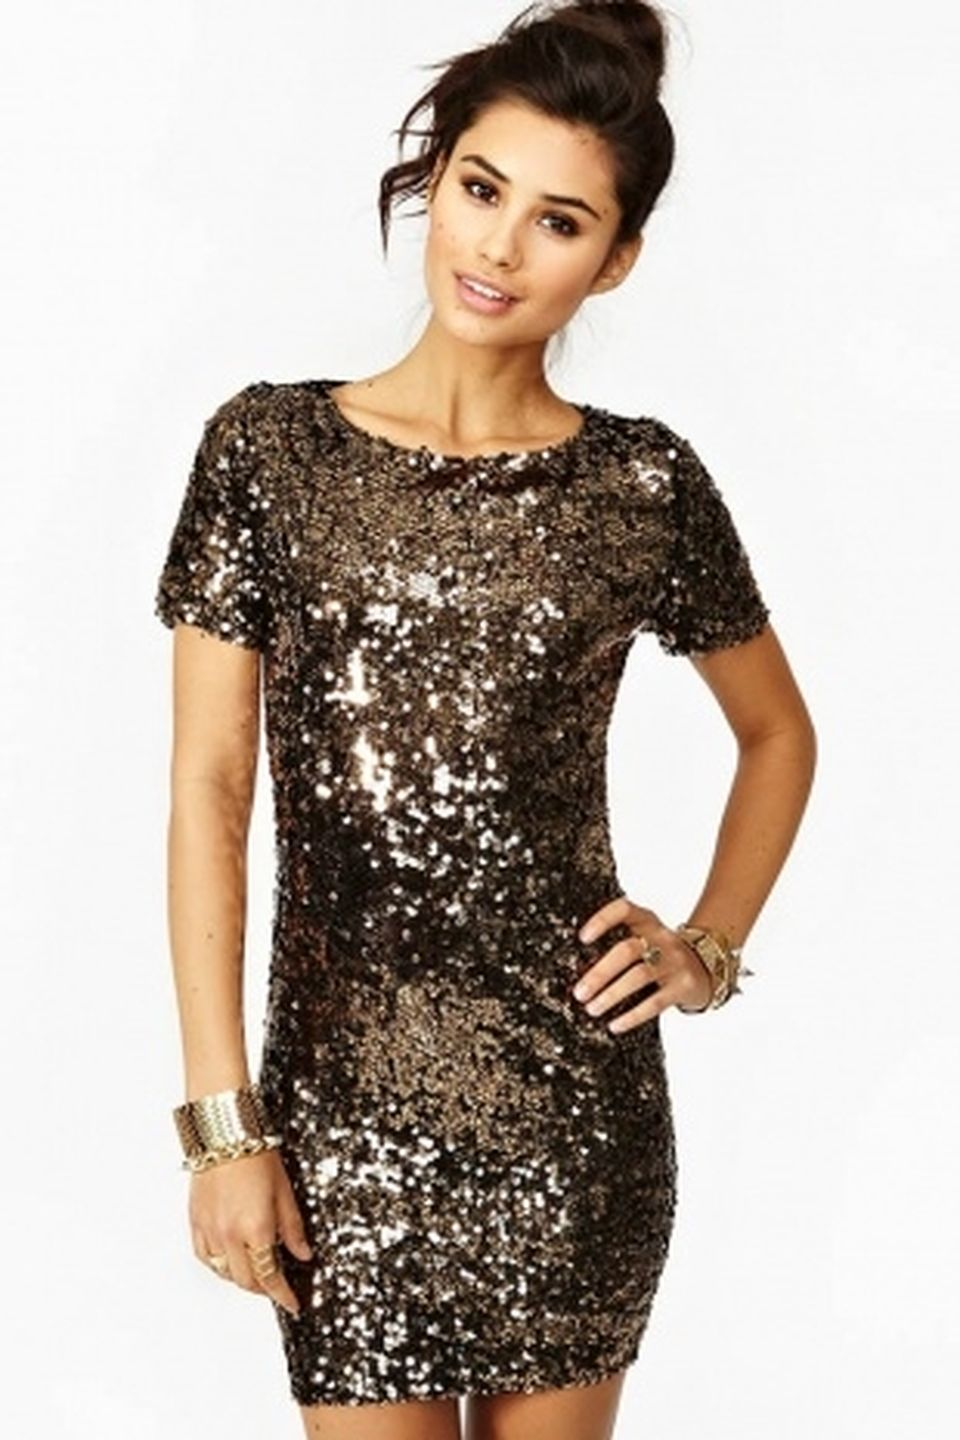 Sequin dress for new year eve party and night out 64